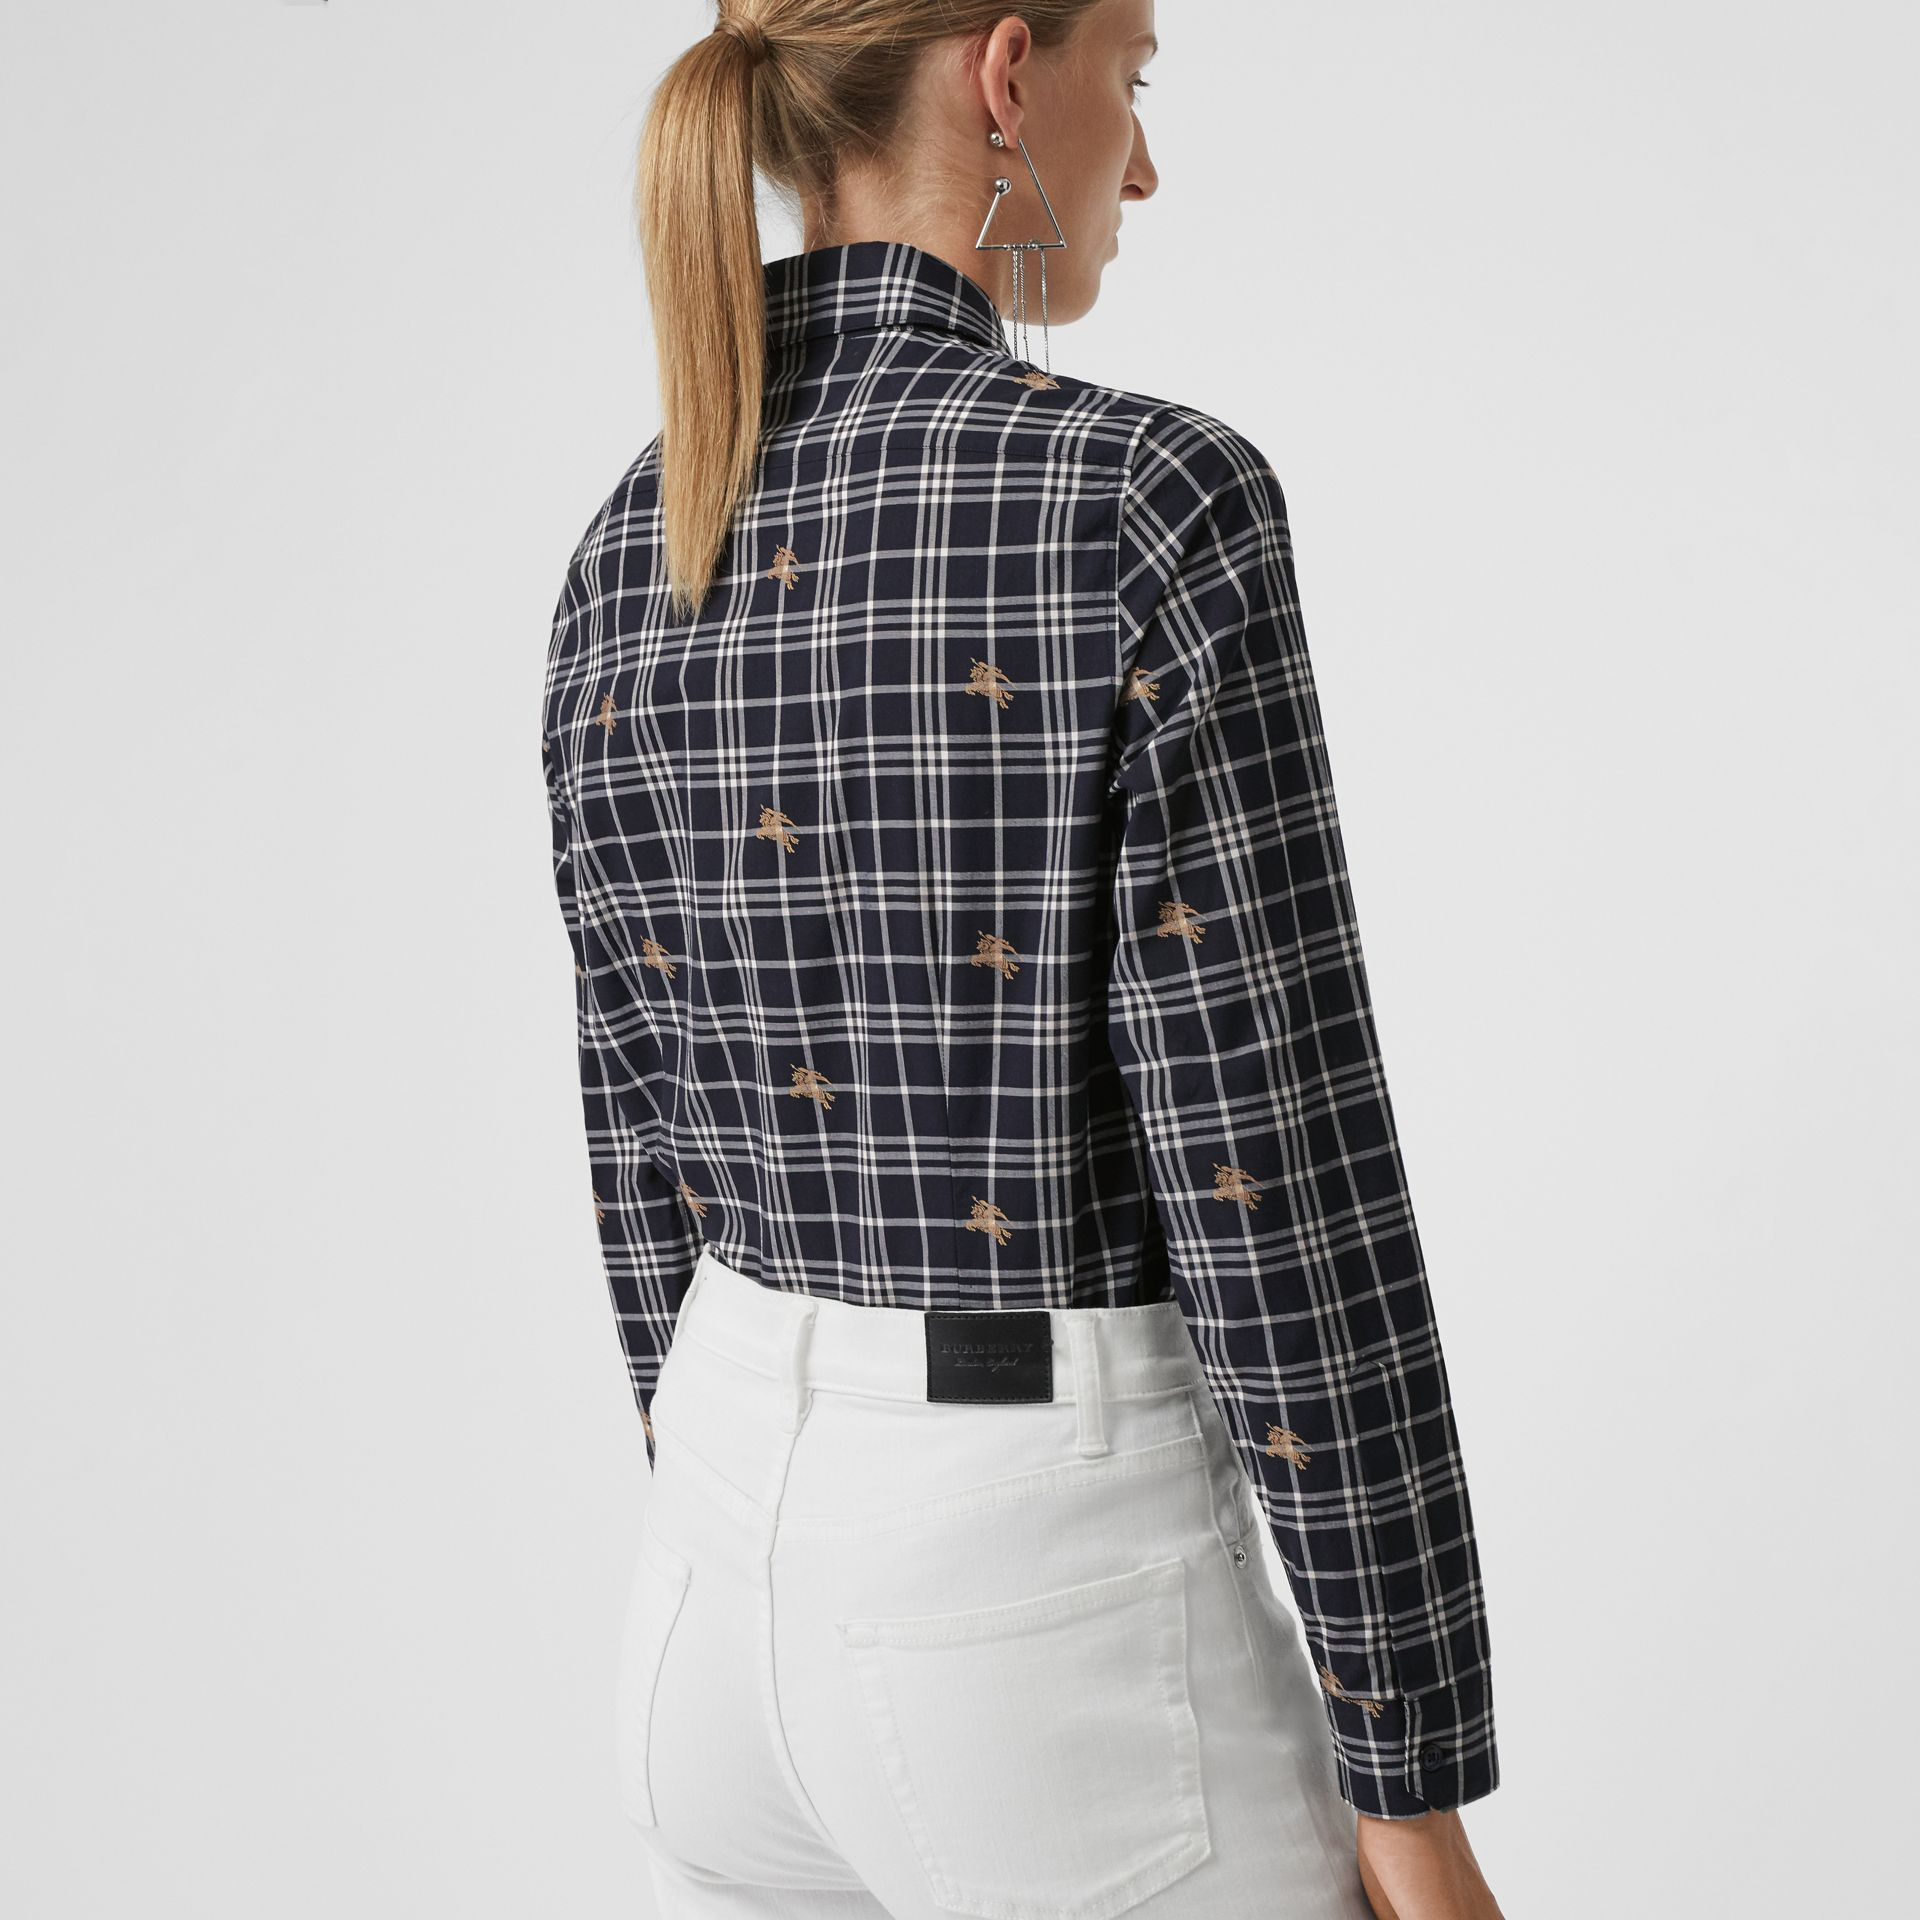 Equestrian Knight Check Cotton Shirt in Navy - Women | Burberry - gallery image 2